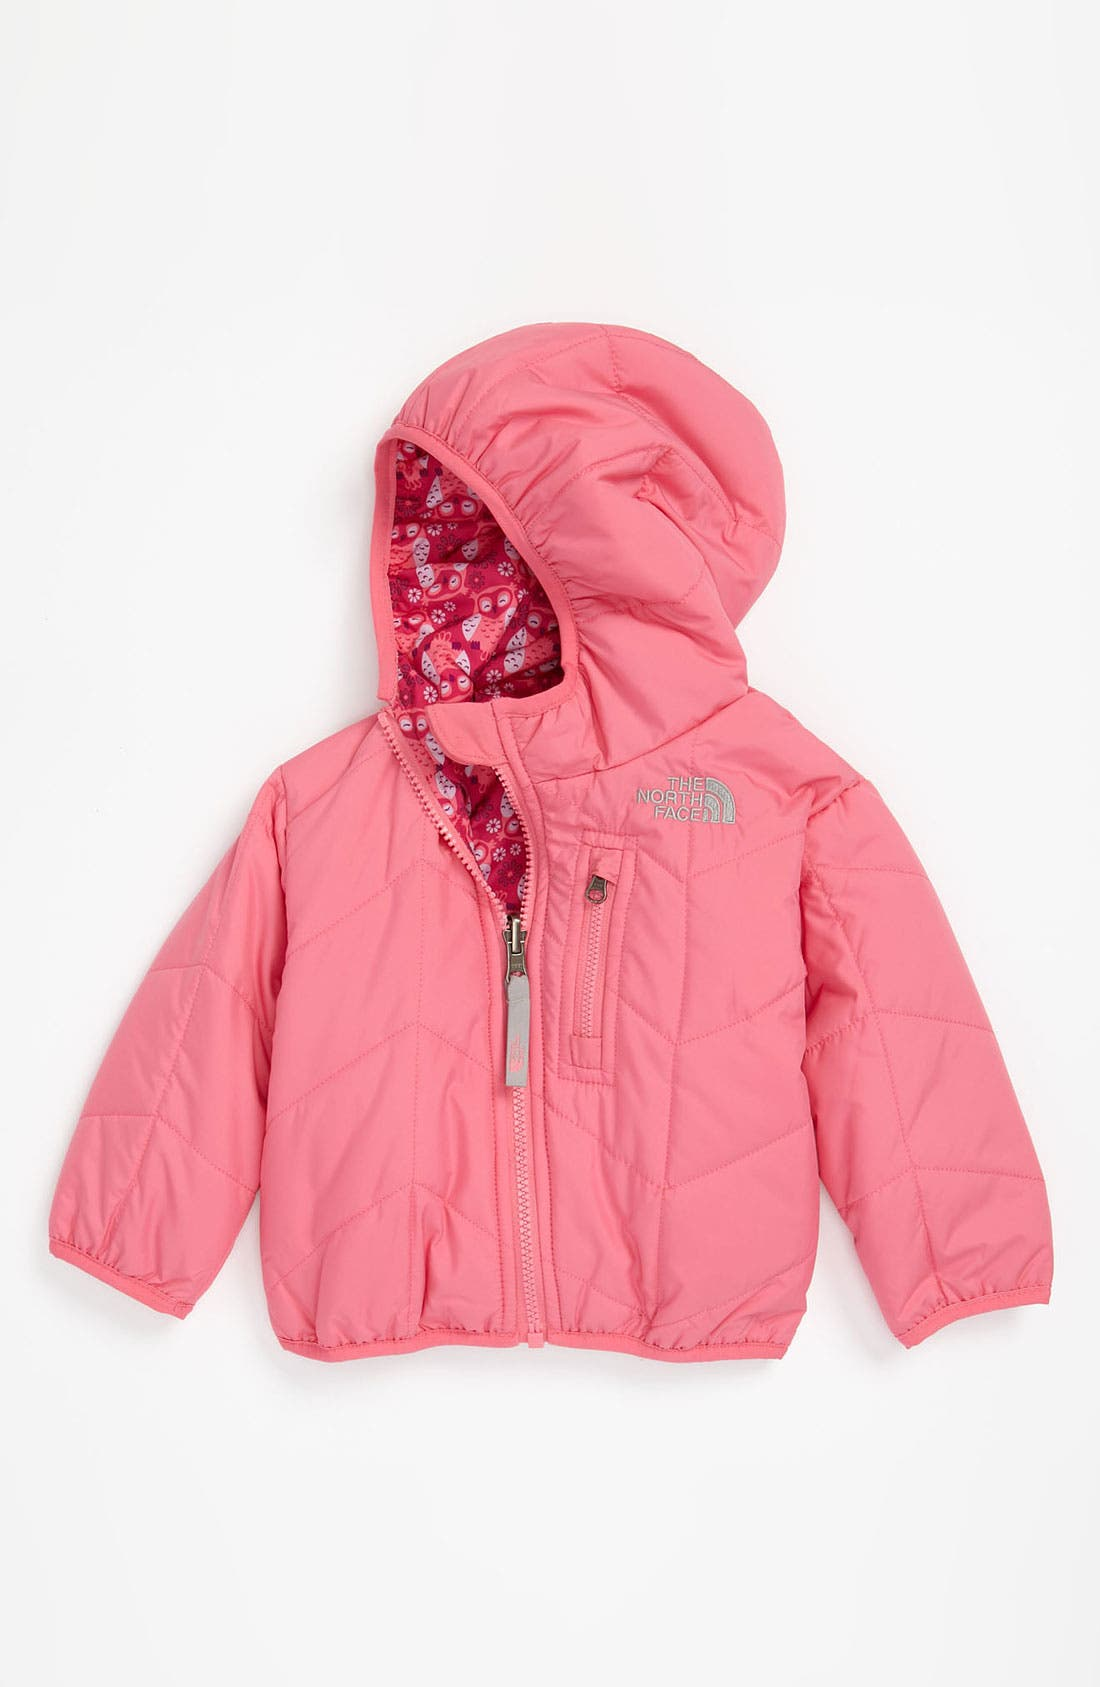 Main Image - The North Face 'Perrito' Reversible Jacket (Infant)